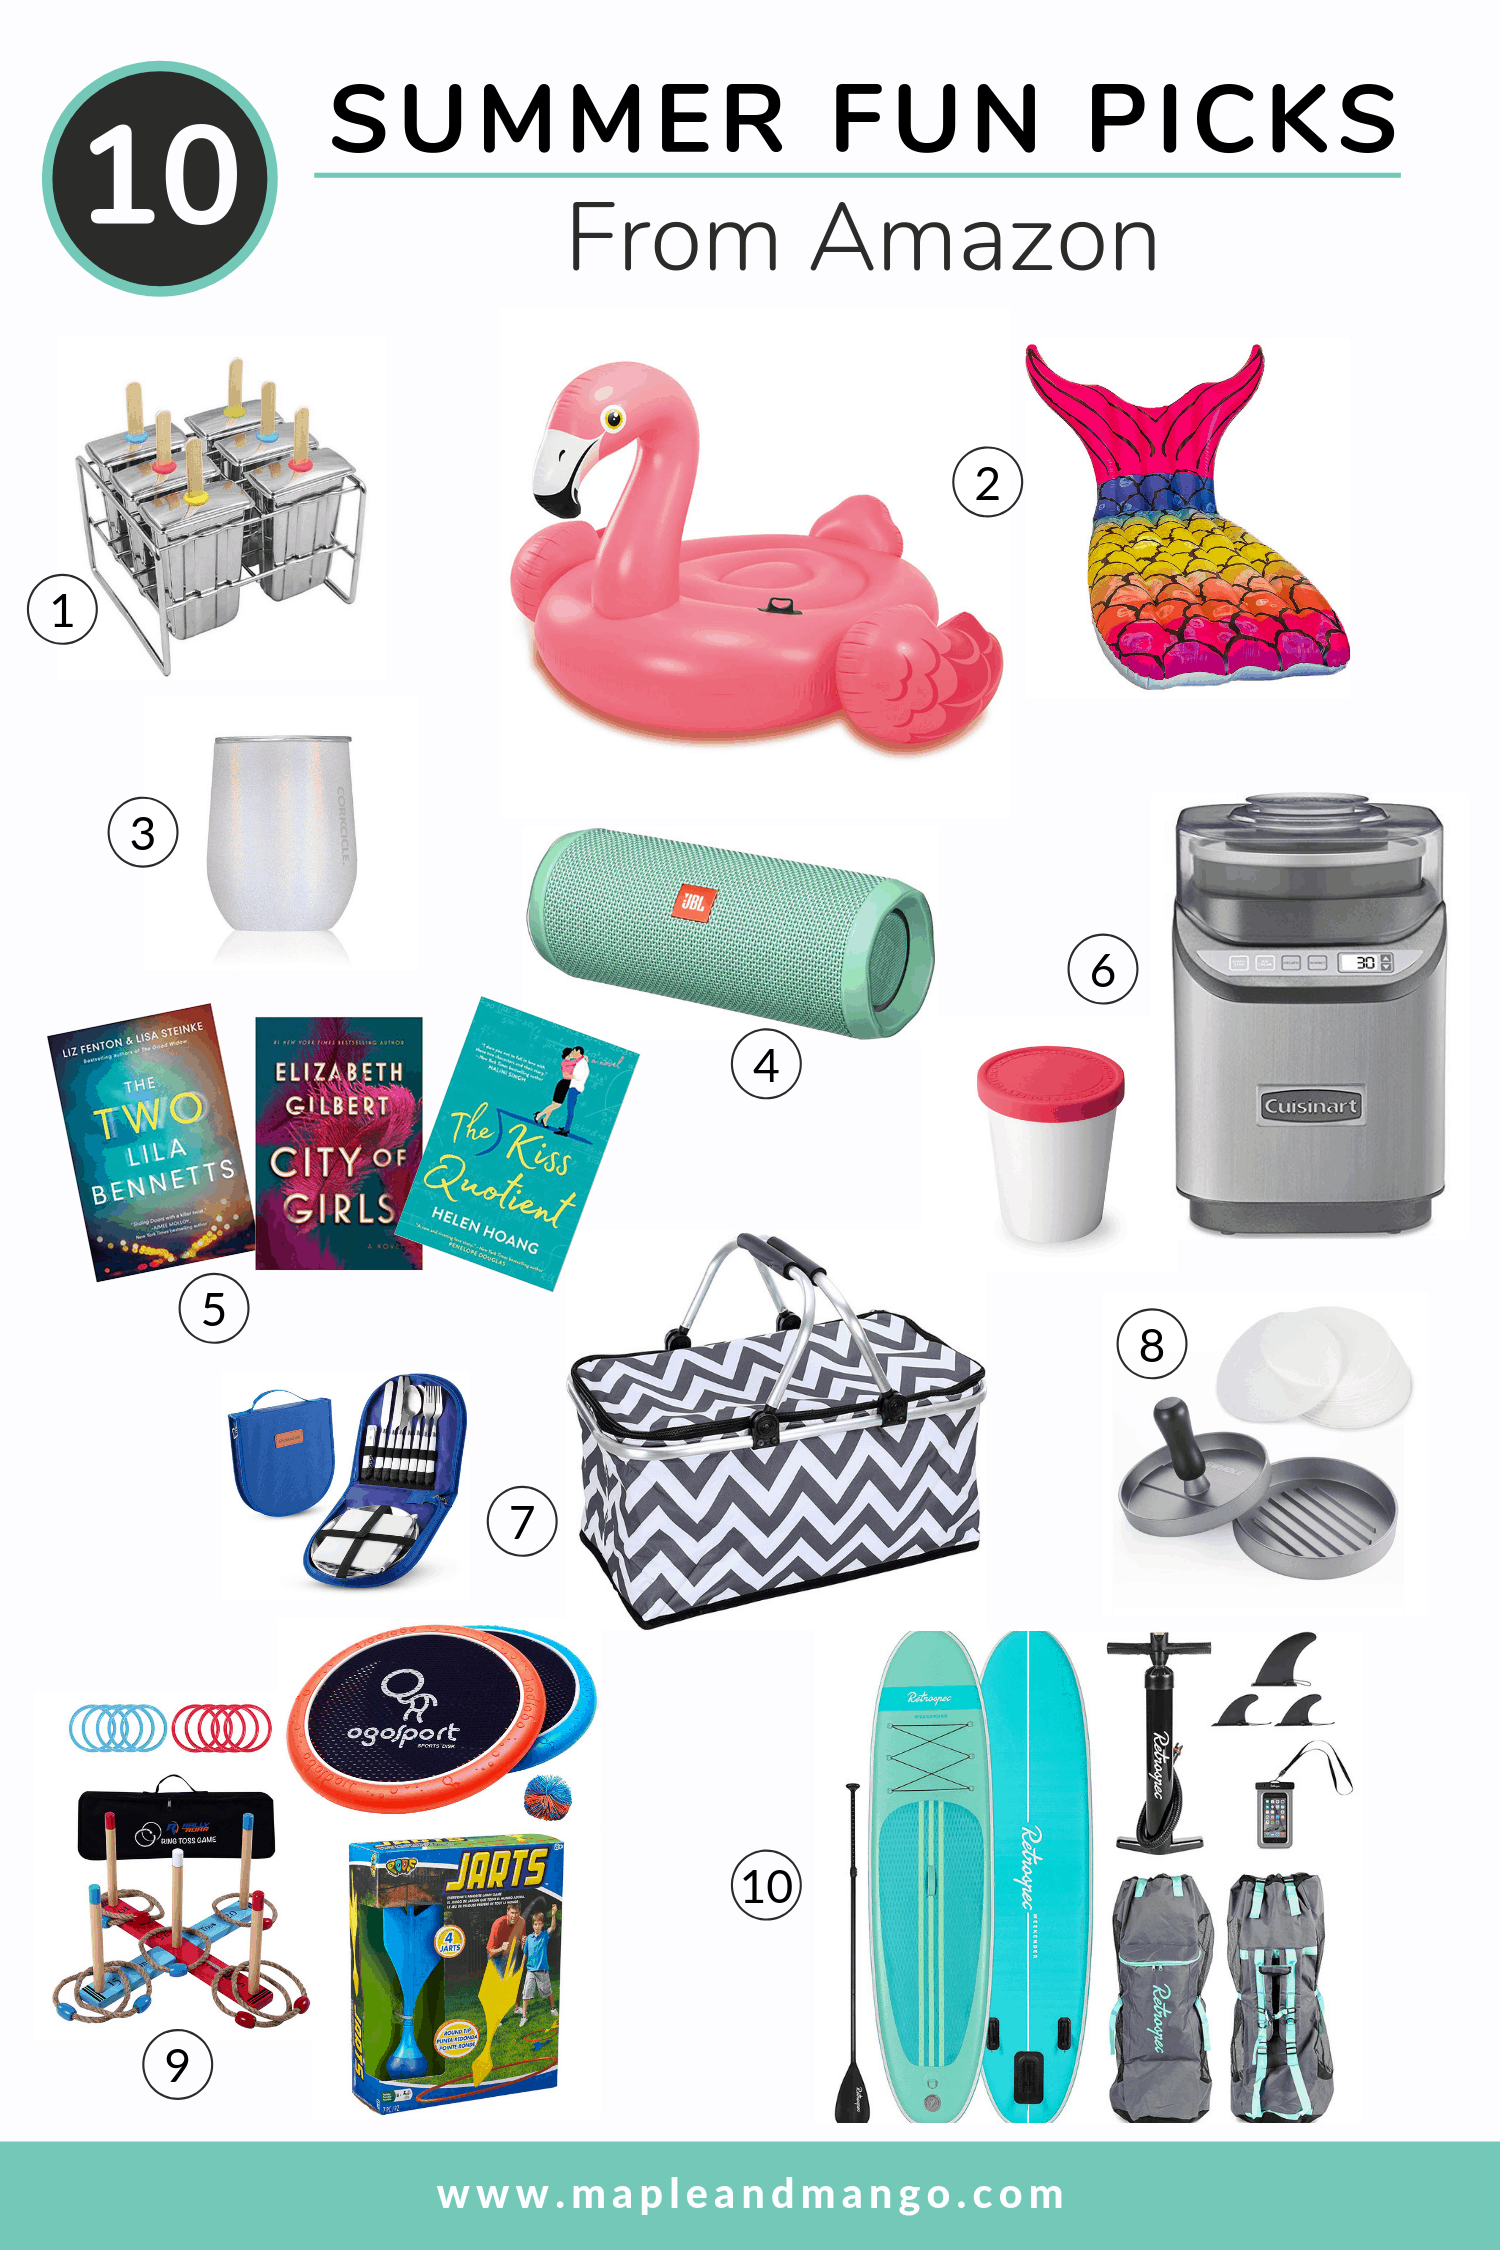 Pinterest Image featuring 10 summer fun picks from Amazon